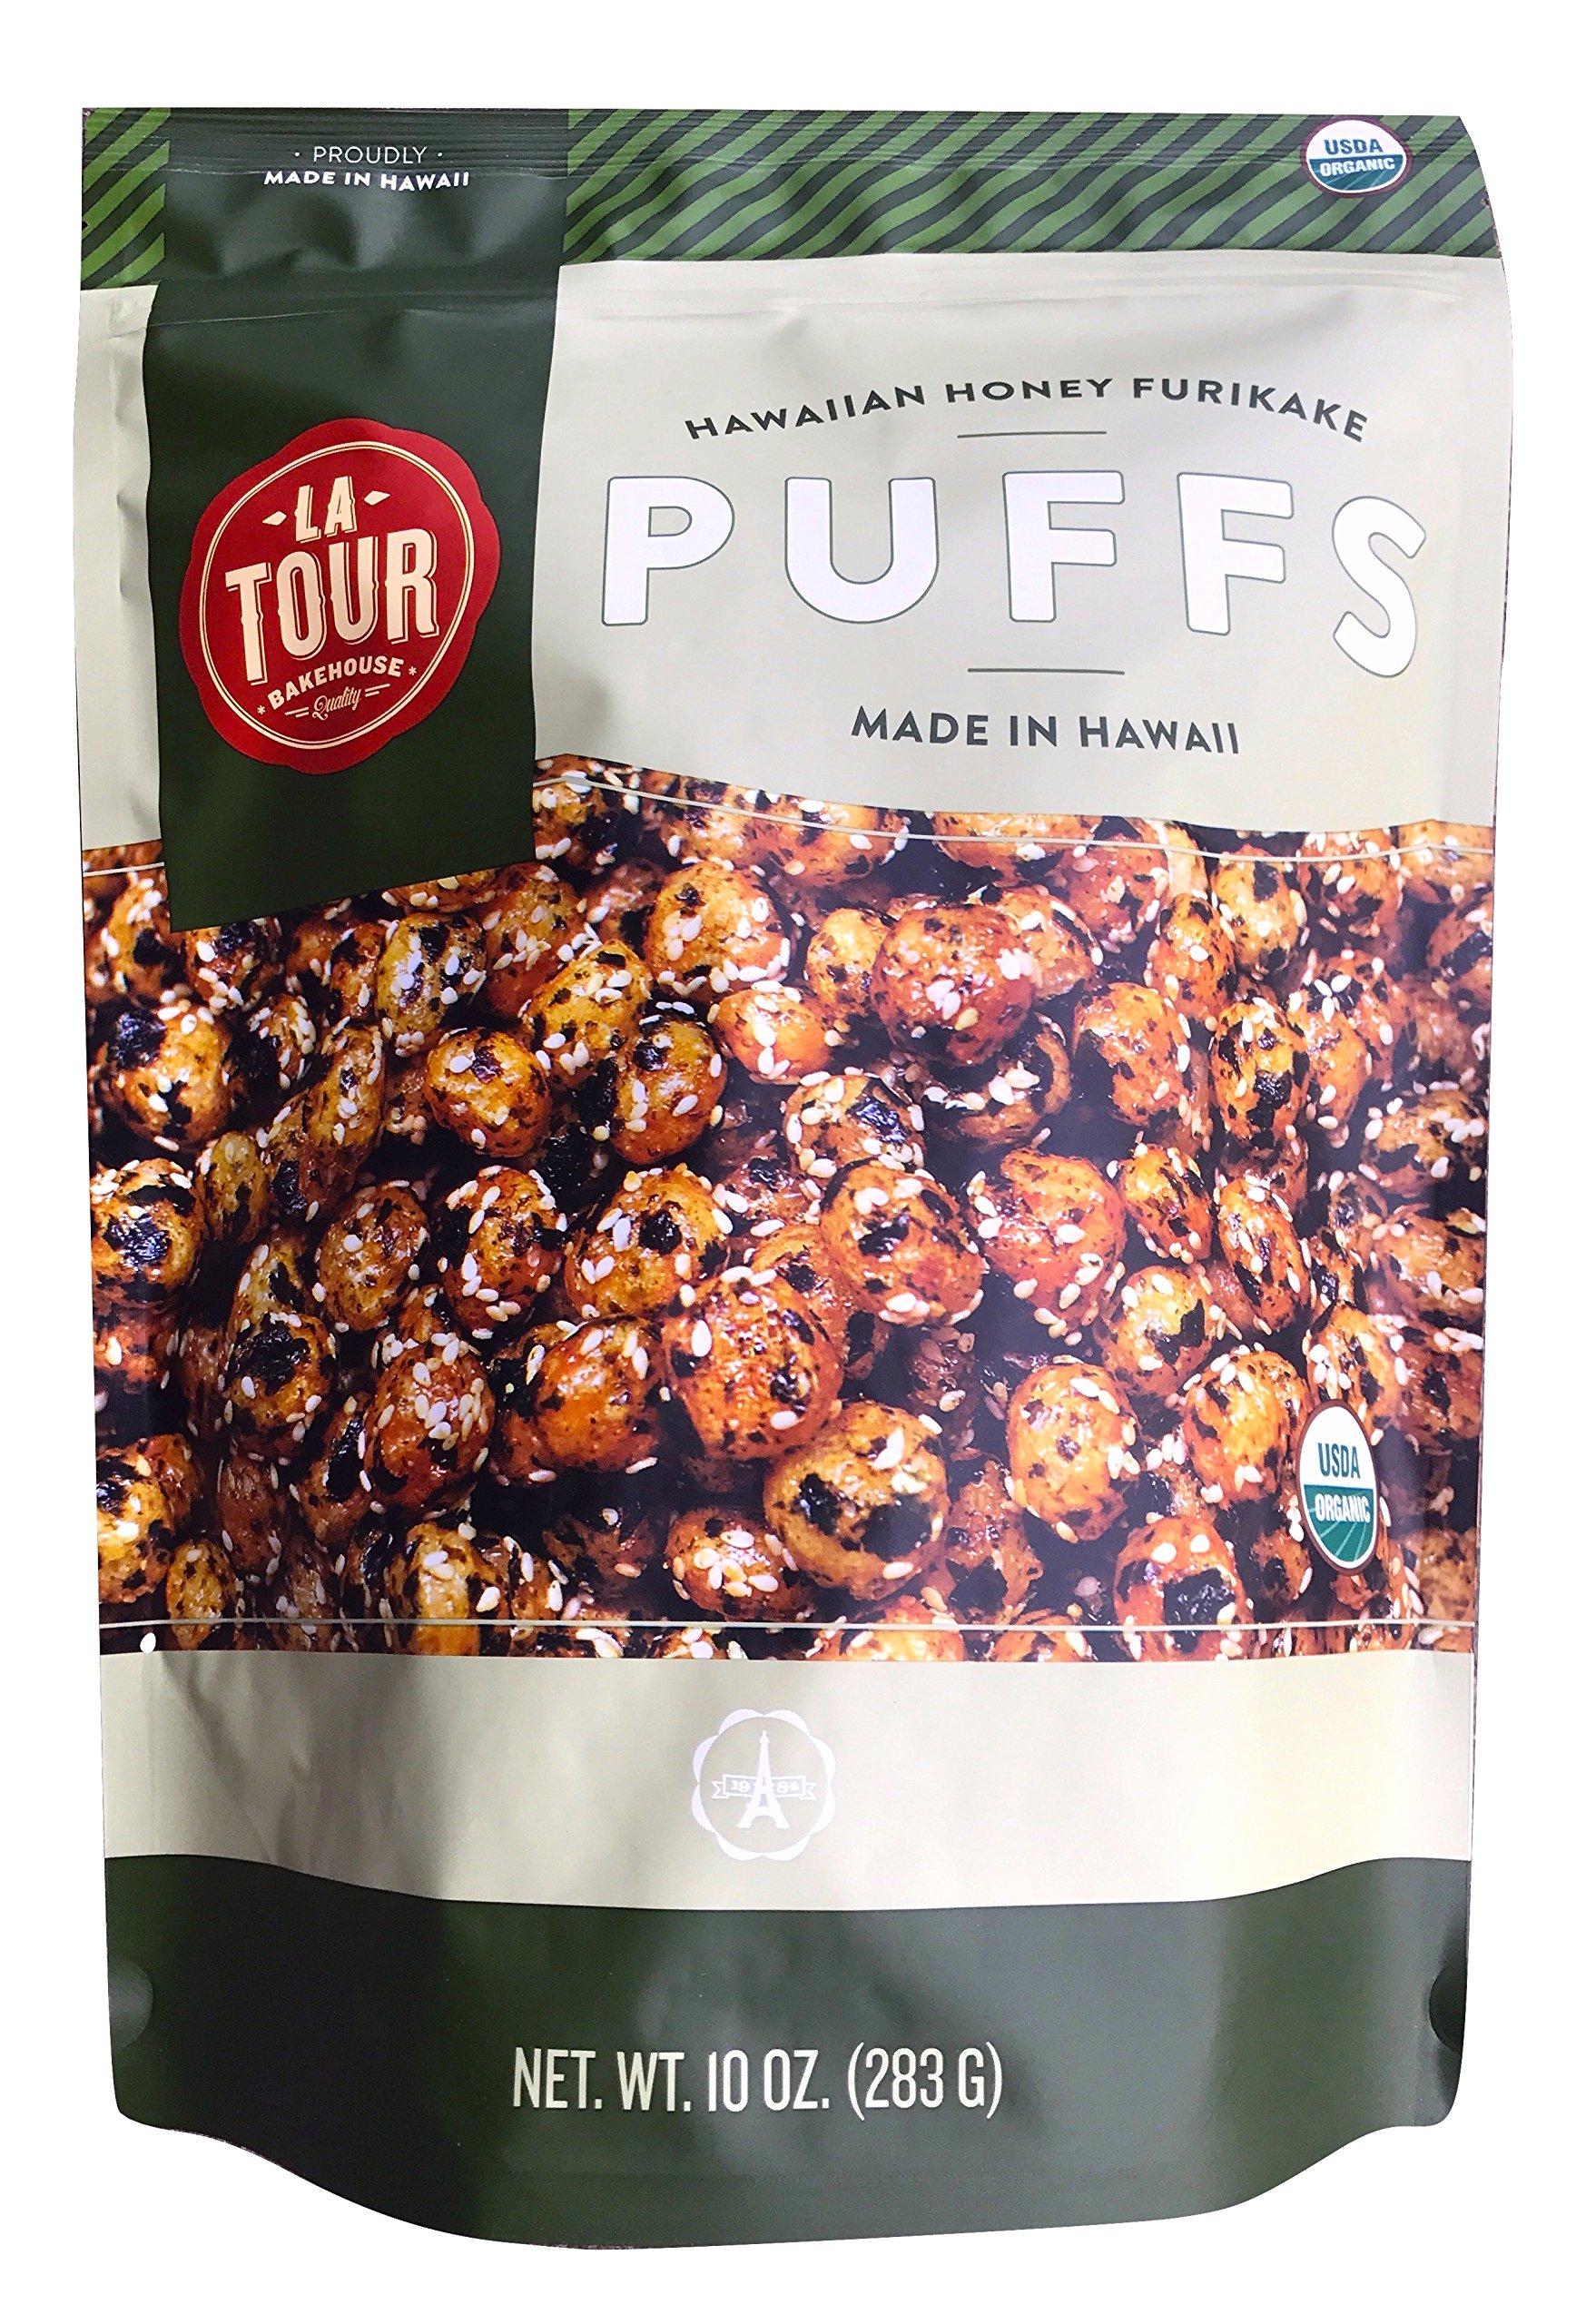 La Tour Organic Furikake Puffs (Whole Grain Puffs) 10 oz Bag